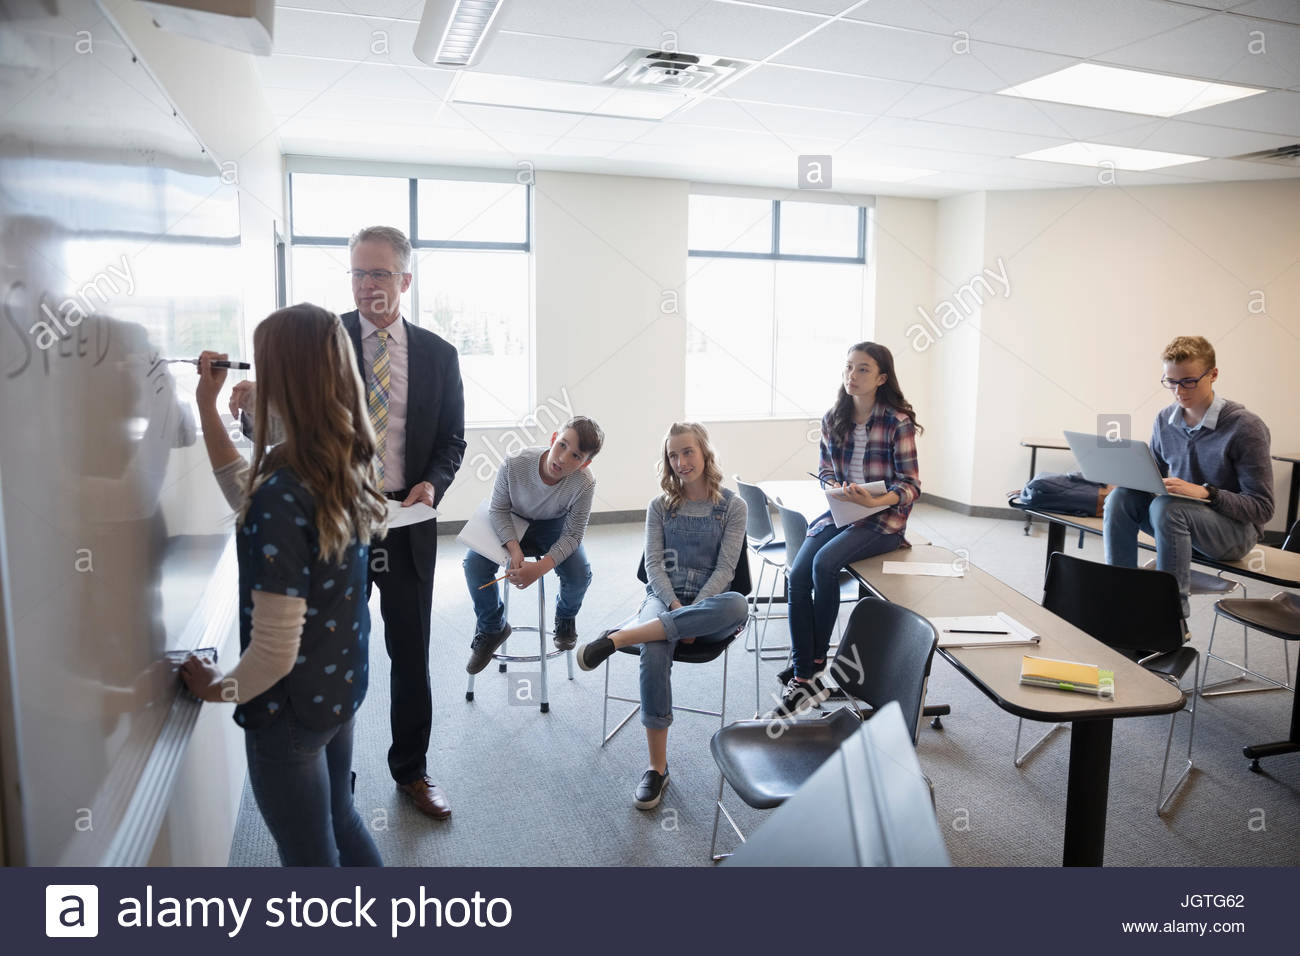 Teacher helping middle school student at whiteboard in classroom Stock Photo